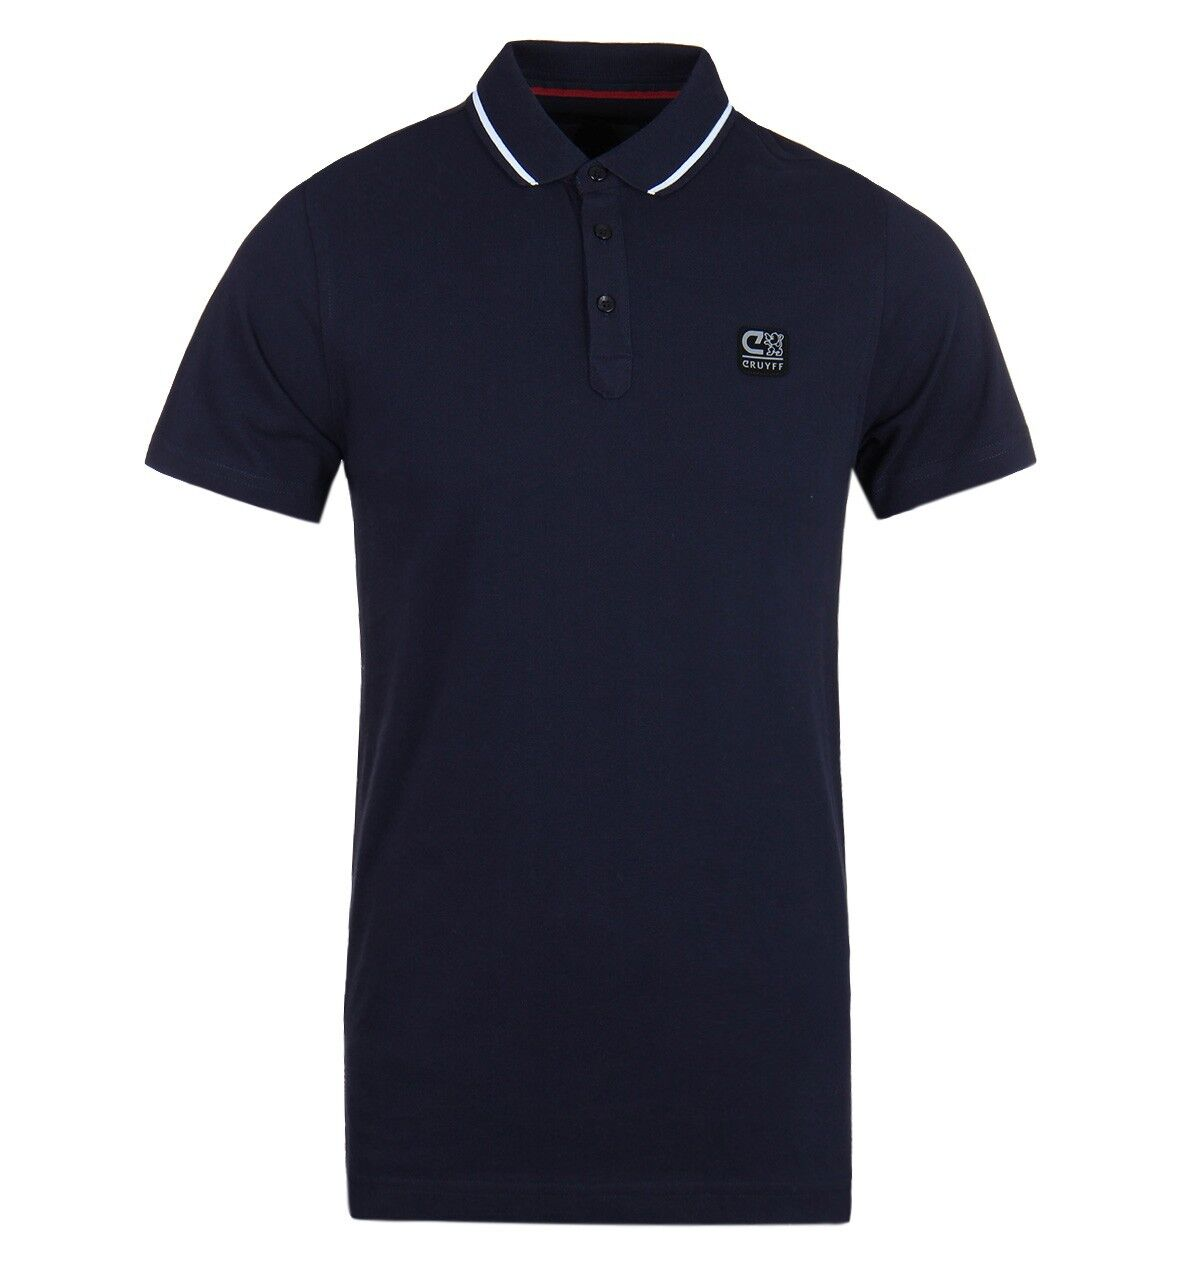 Cruyff Hans 3 Navy Tailored Fit Pique Short Sleeve Mens Polo Shirt